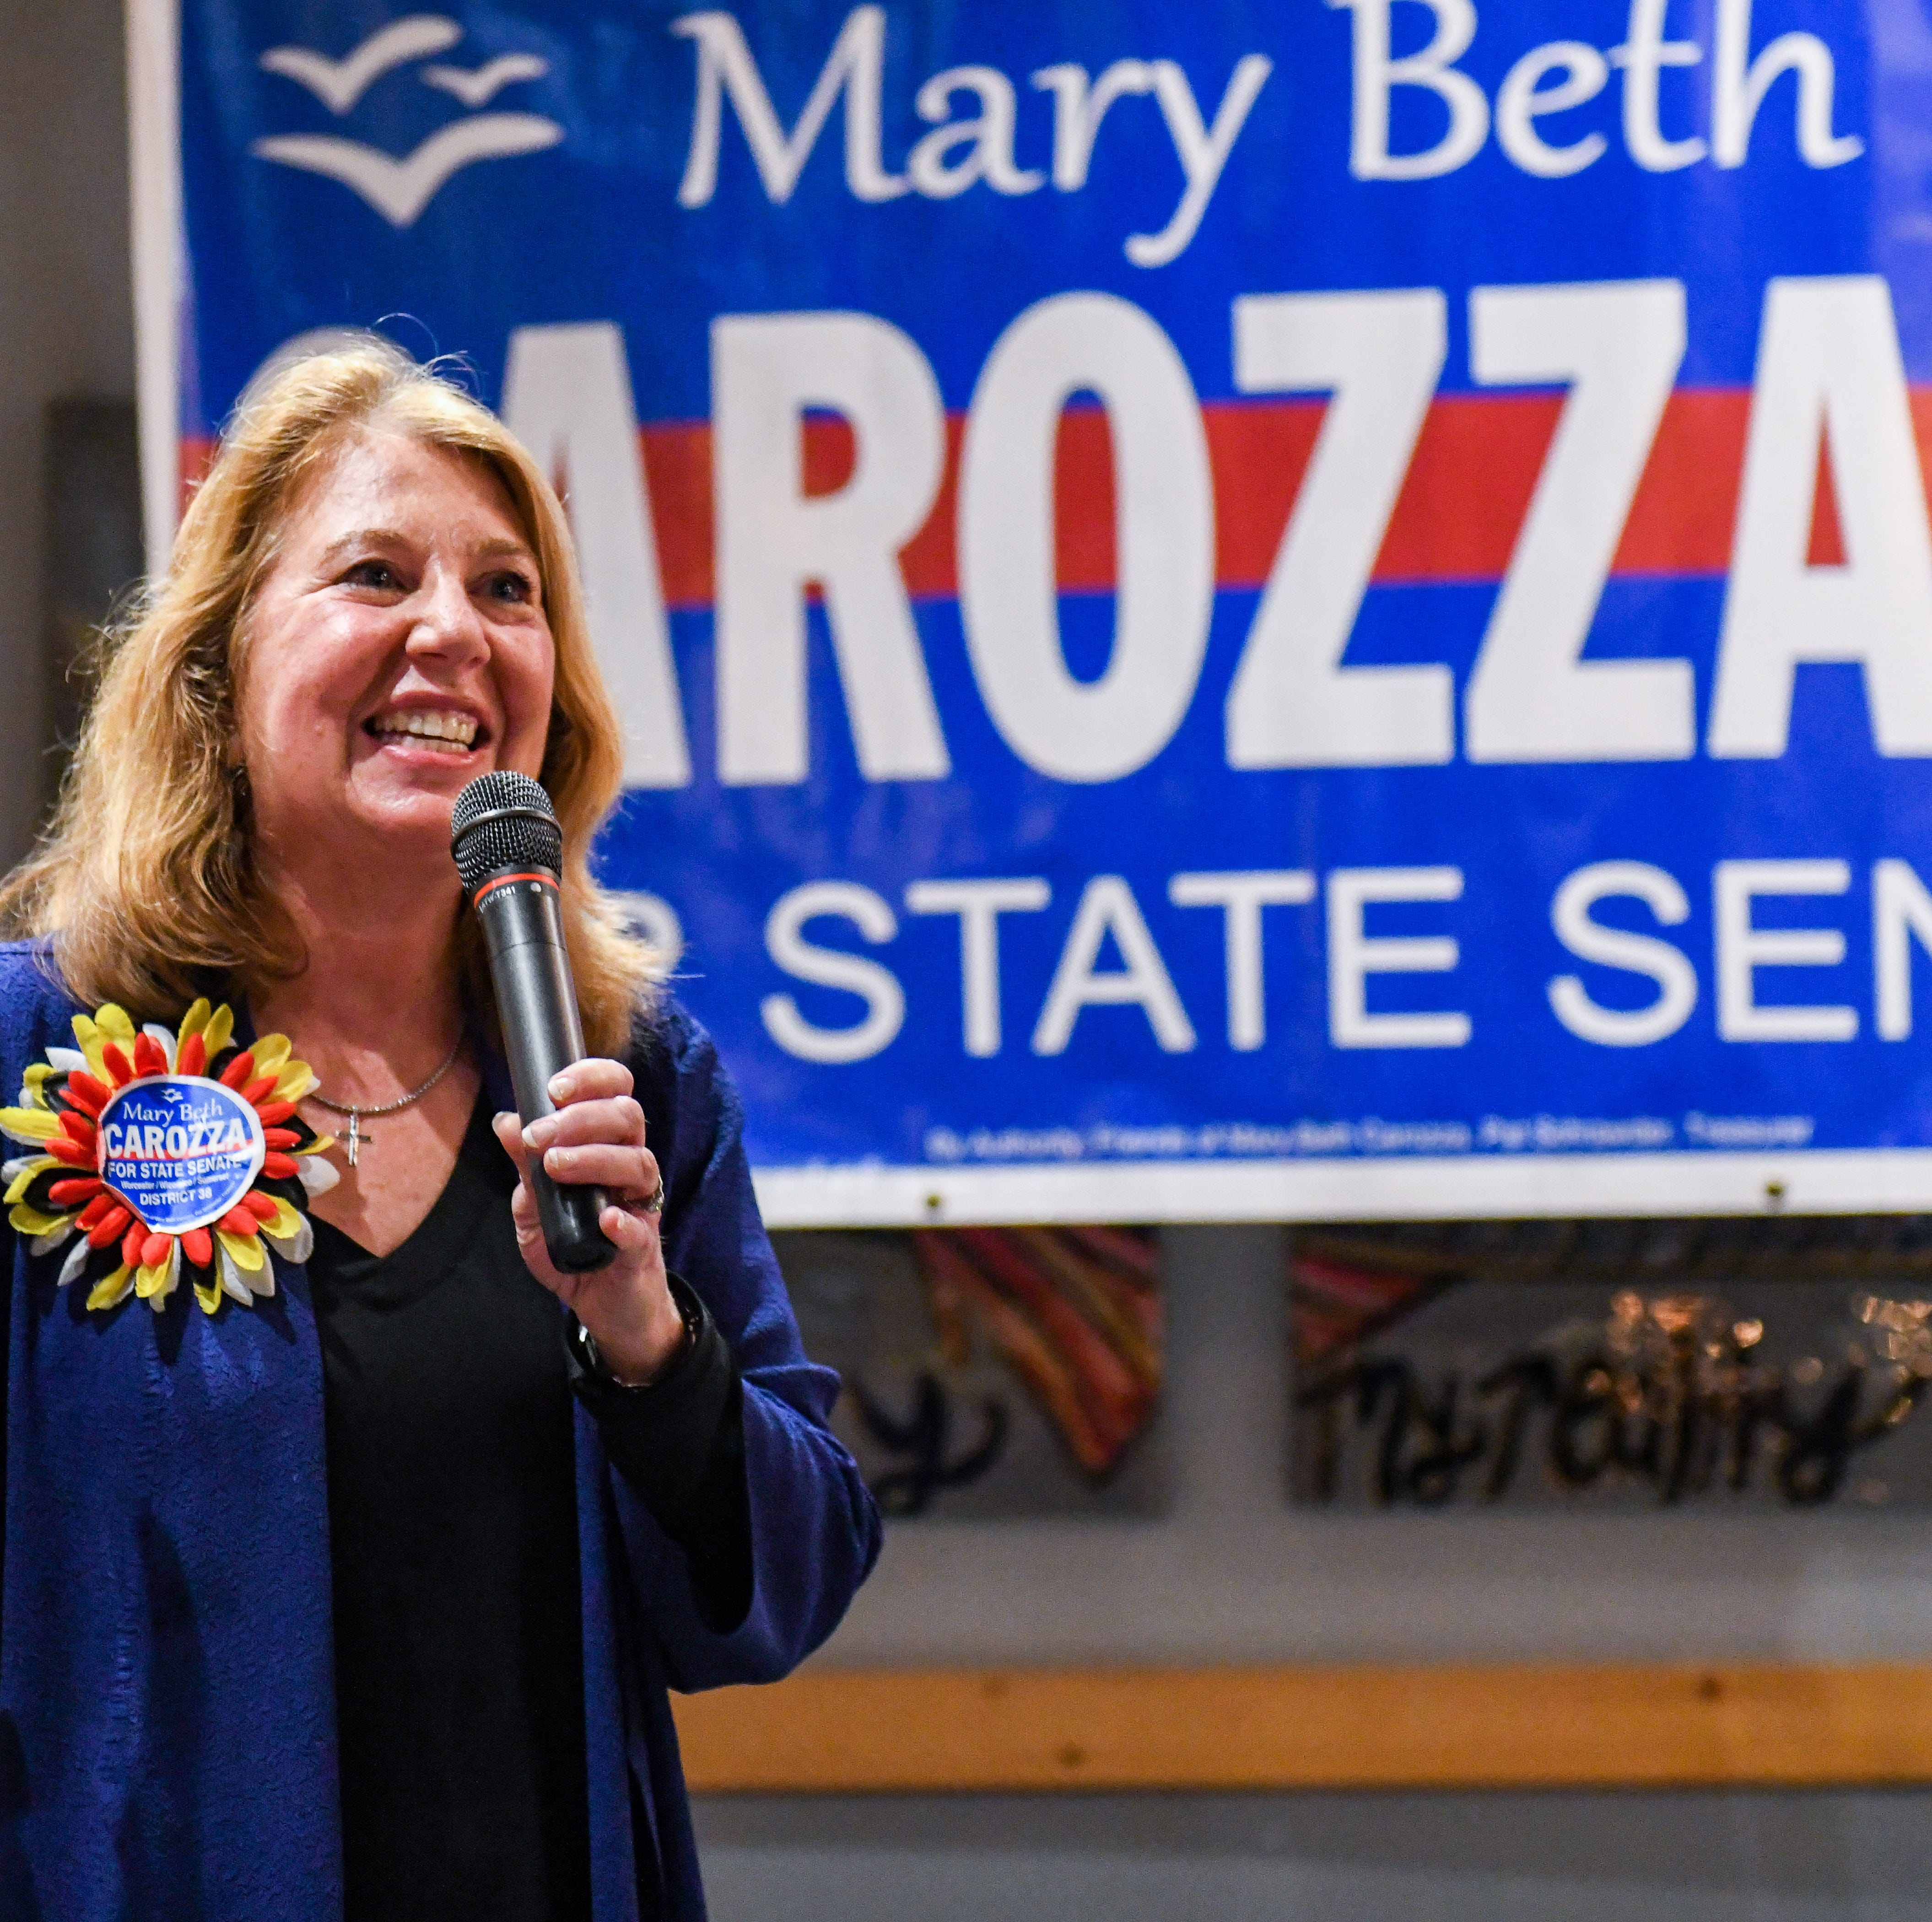 Here are the issues Mary Beth Carozza will tackle during 1st State Senate term